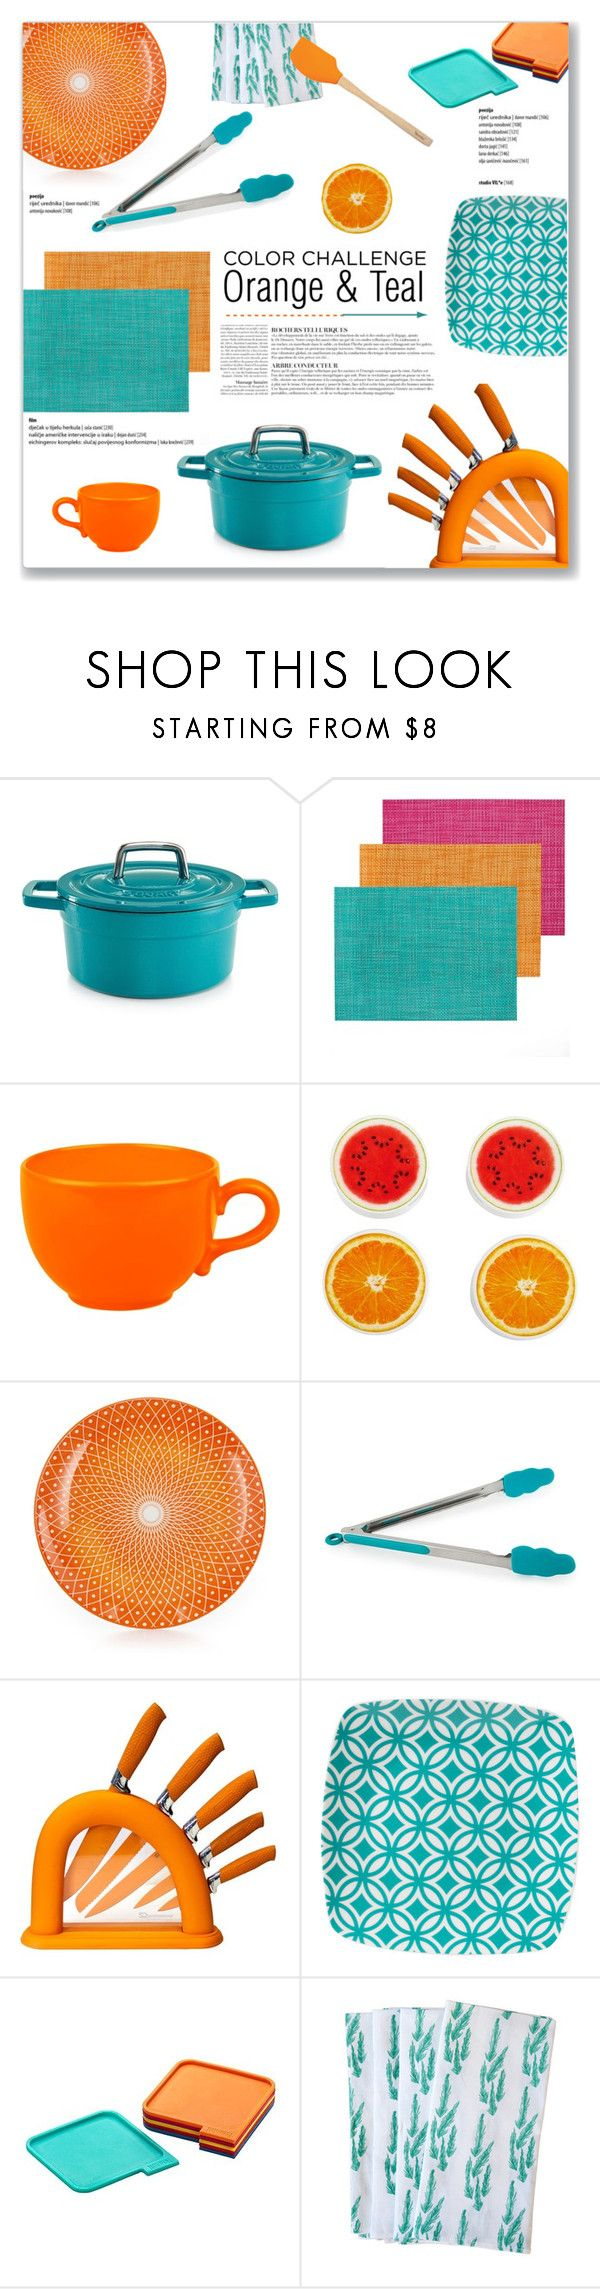 Orange Teal Kitchen Accessories By Kellylynne68 Liked On Polyvore Featuring Interior Interiors Design Home Decor